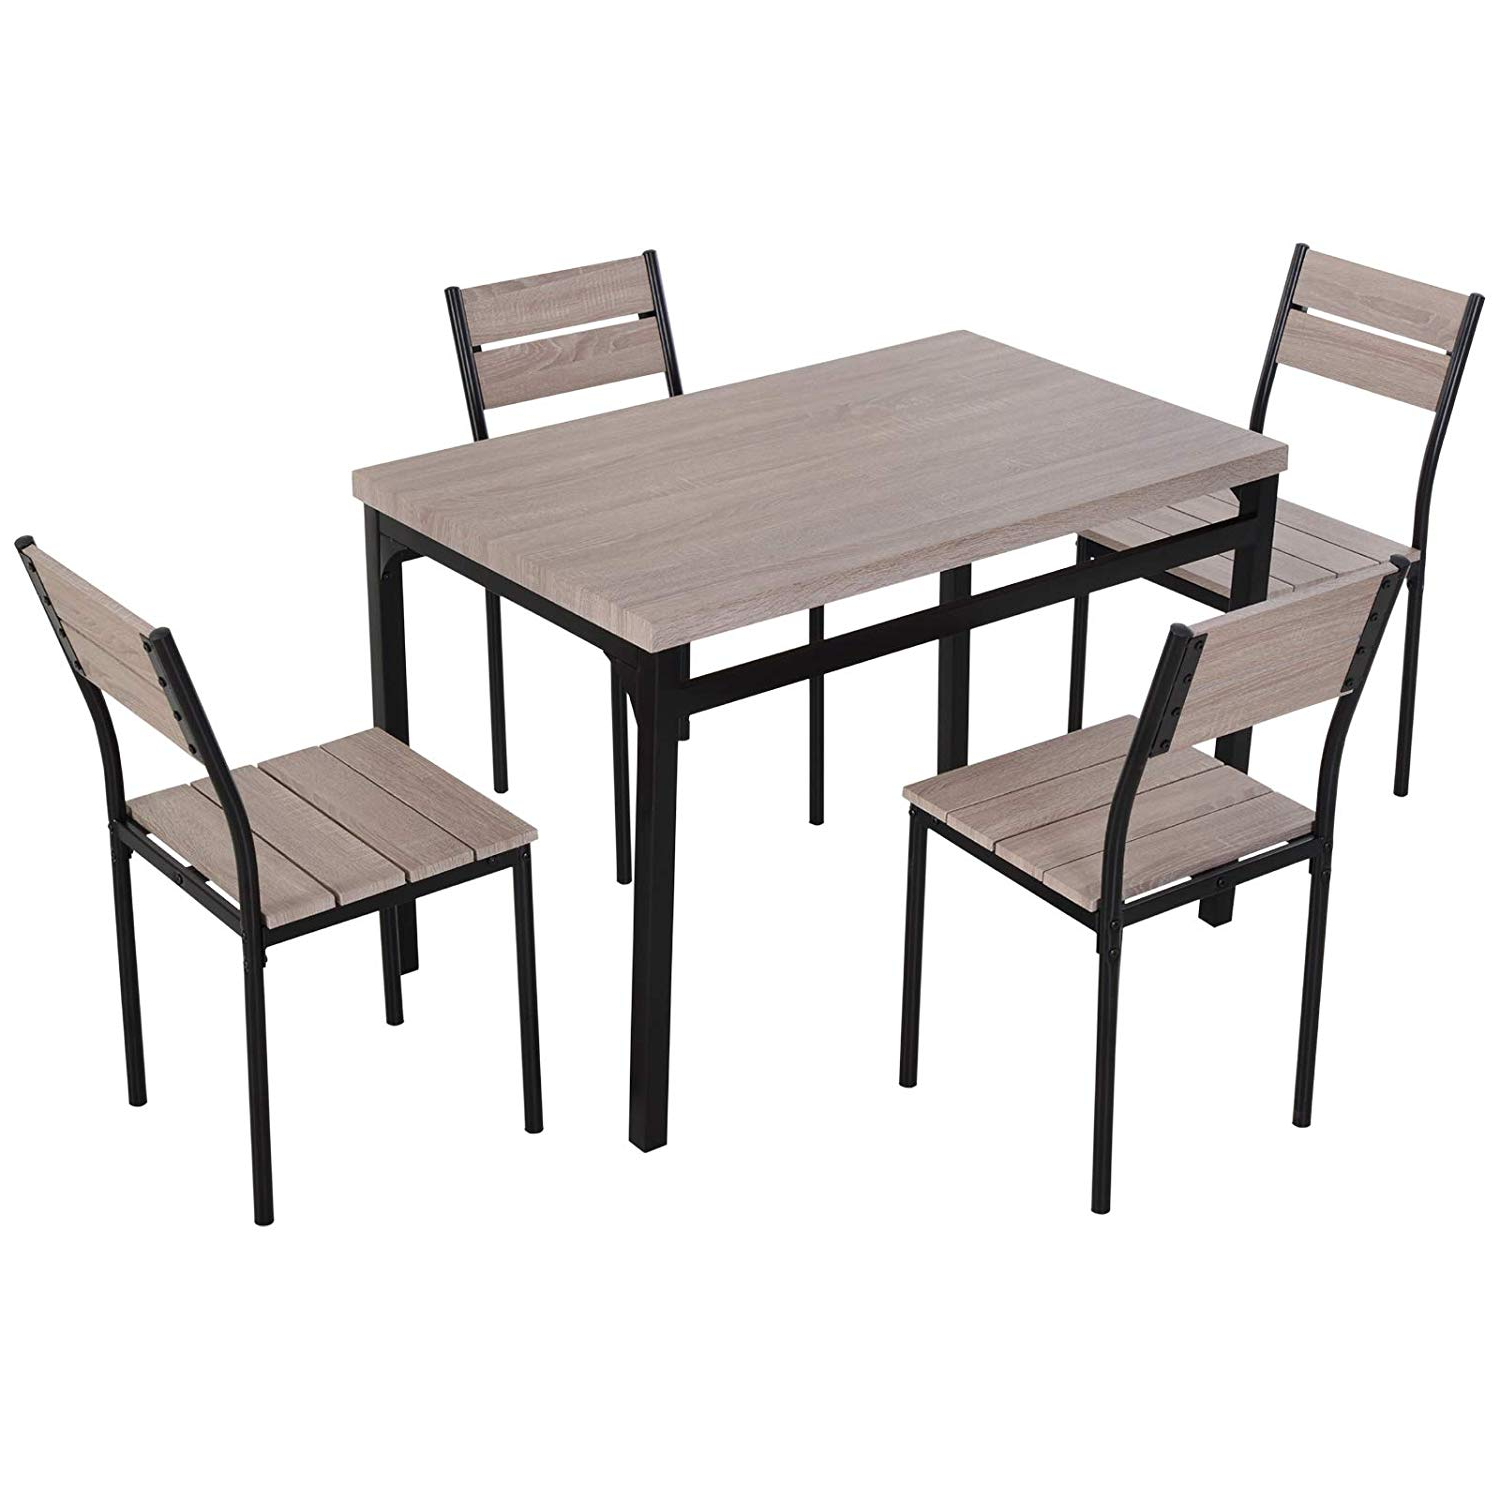 Most Current Transitional 3 Piece Drop Leaf Casual Dining Tables Set Throughout Homcom 5 Piece Transitional Style Dining Room Table Set With Chairs (View 11 of 25)